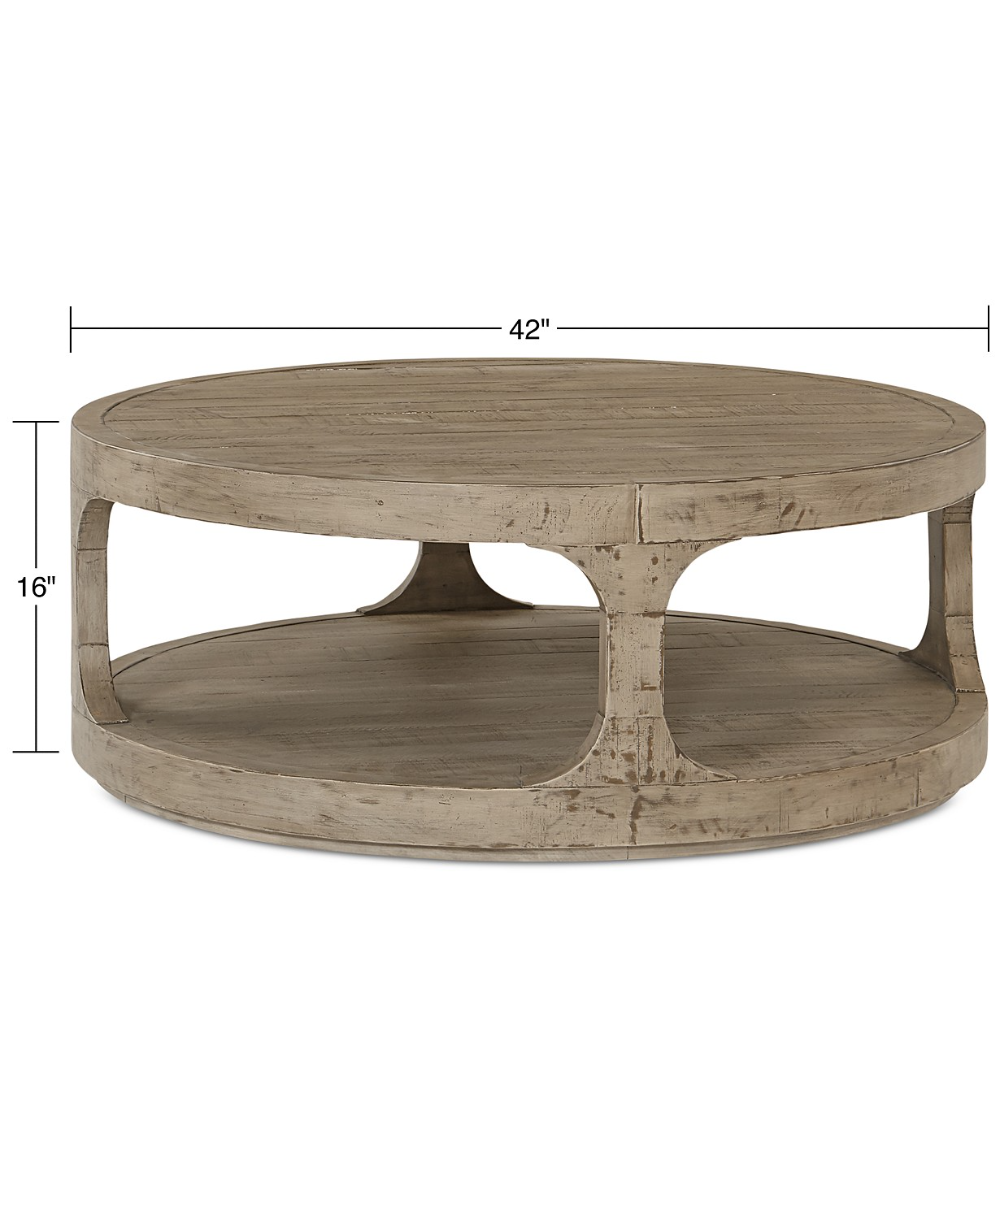 Furniture Derevo Coffee Table Reviews Furniture Macy S In 2021 Coffee Table Round Wood Coffee Table White Coffee Table Living Room [ 1219 x 1000 Pixel ]